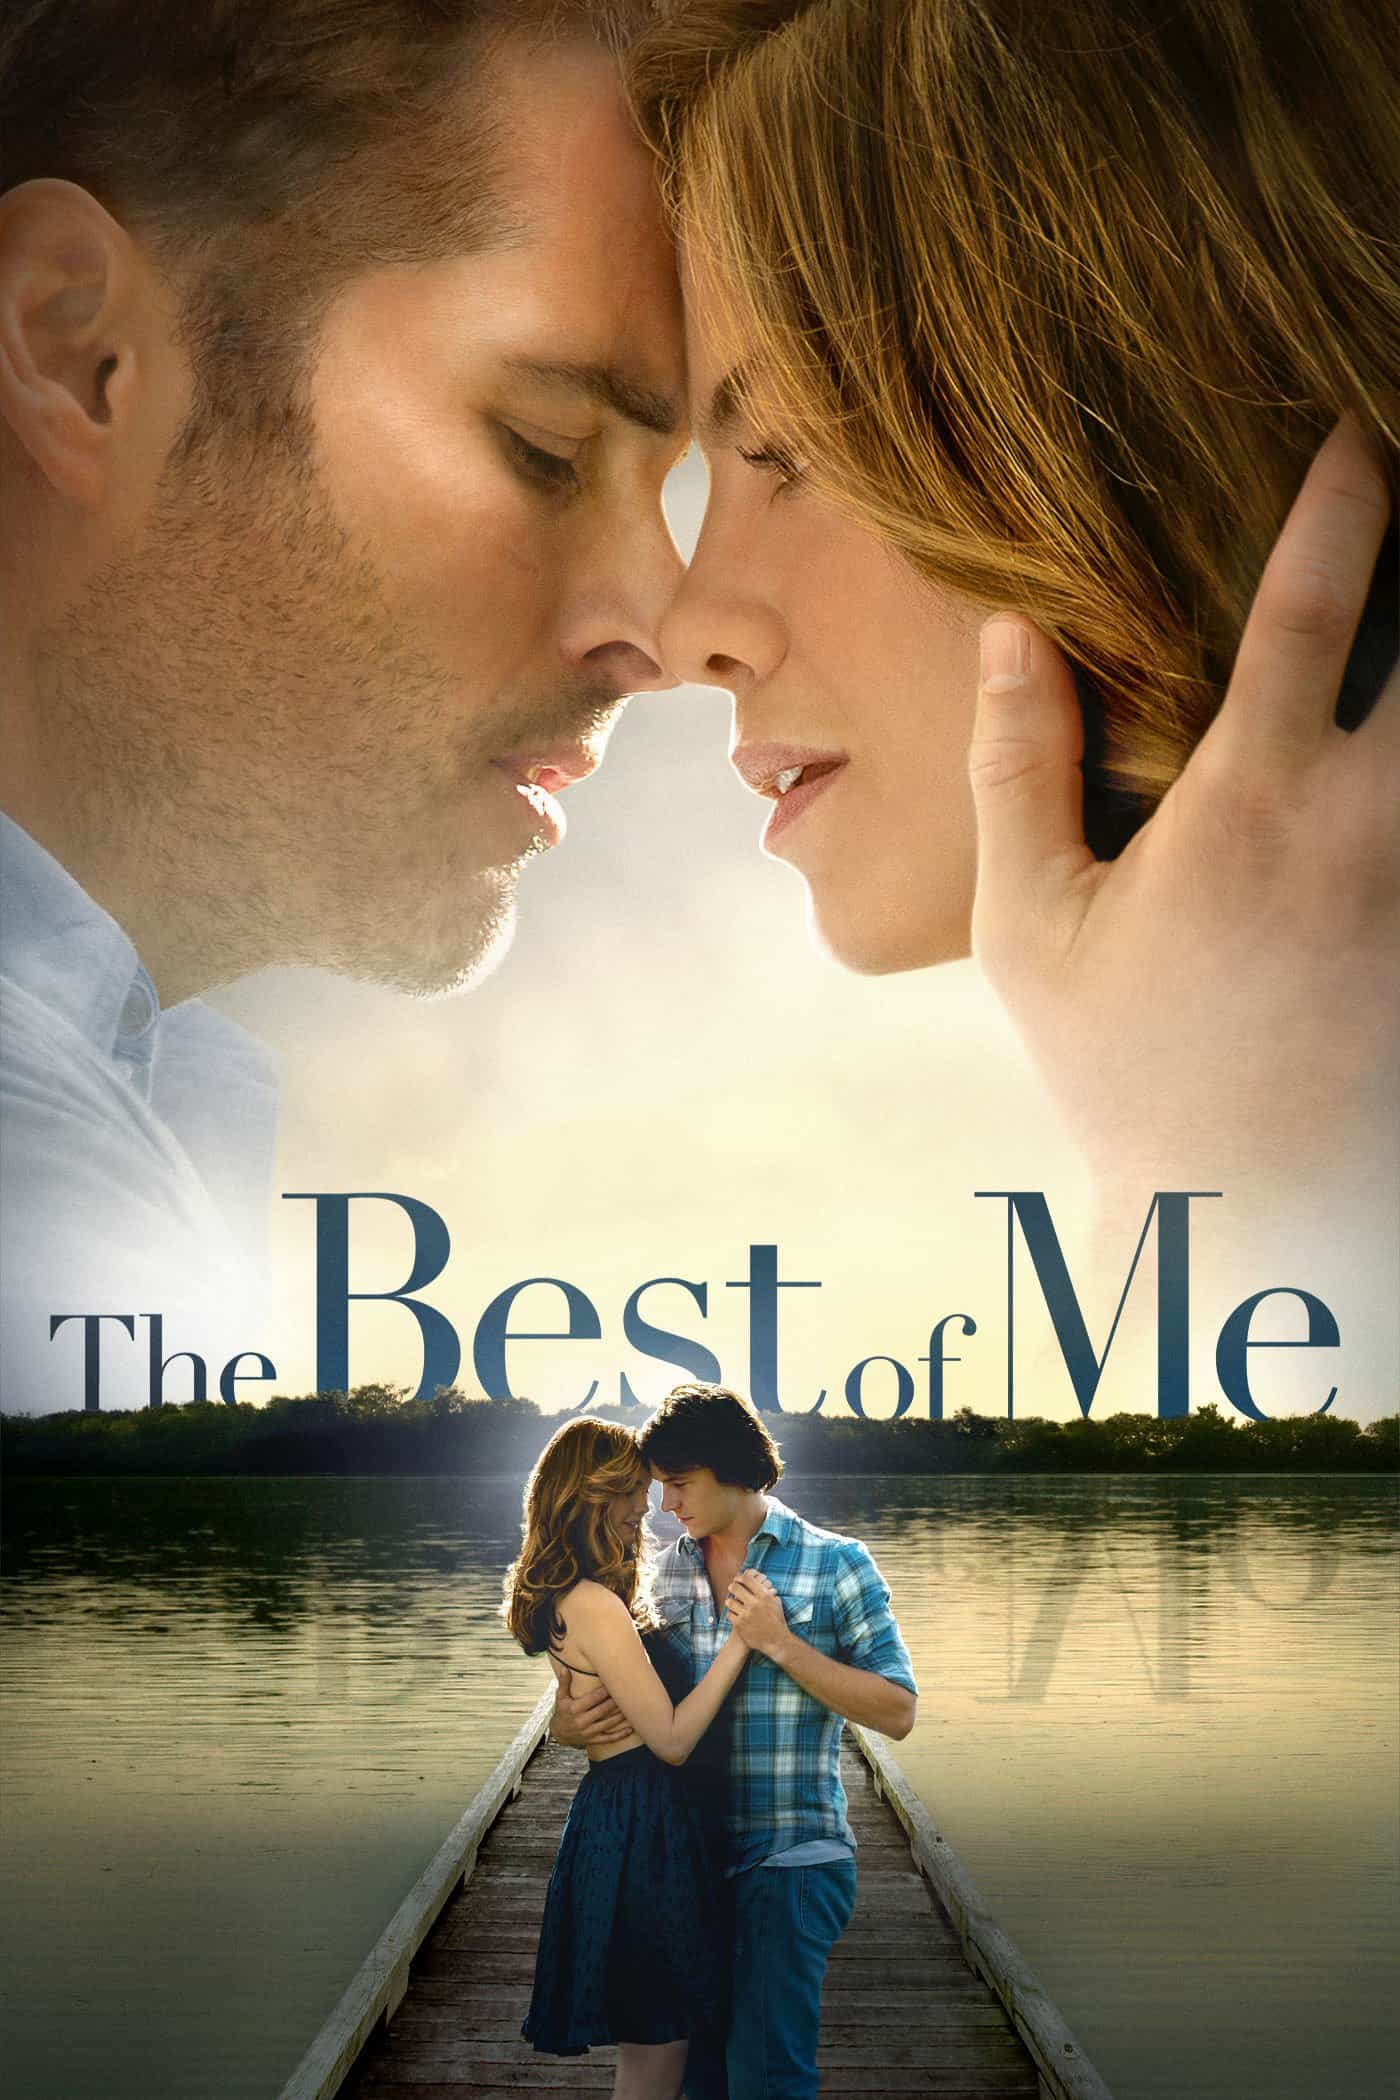 The Best of Me, 2014